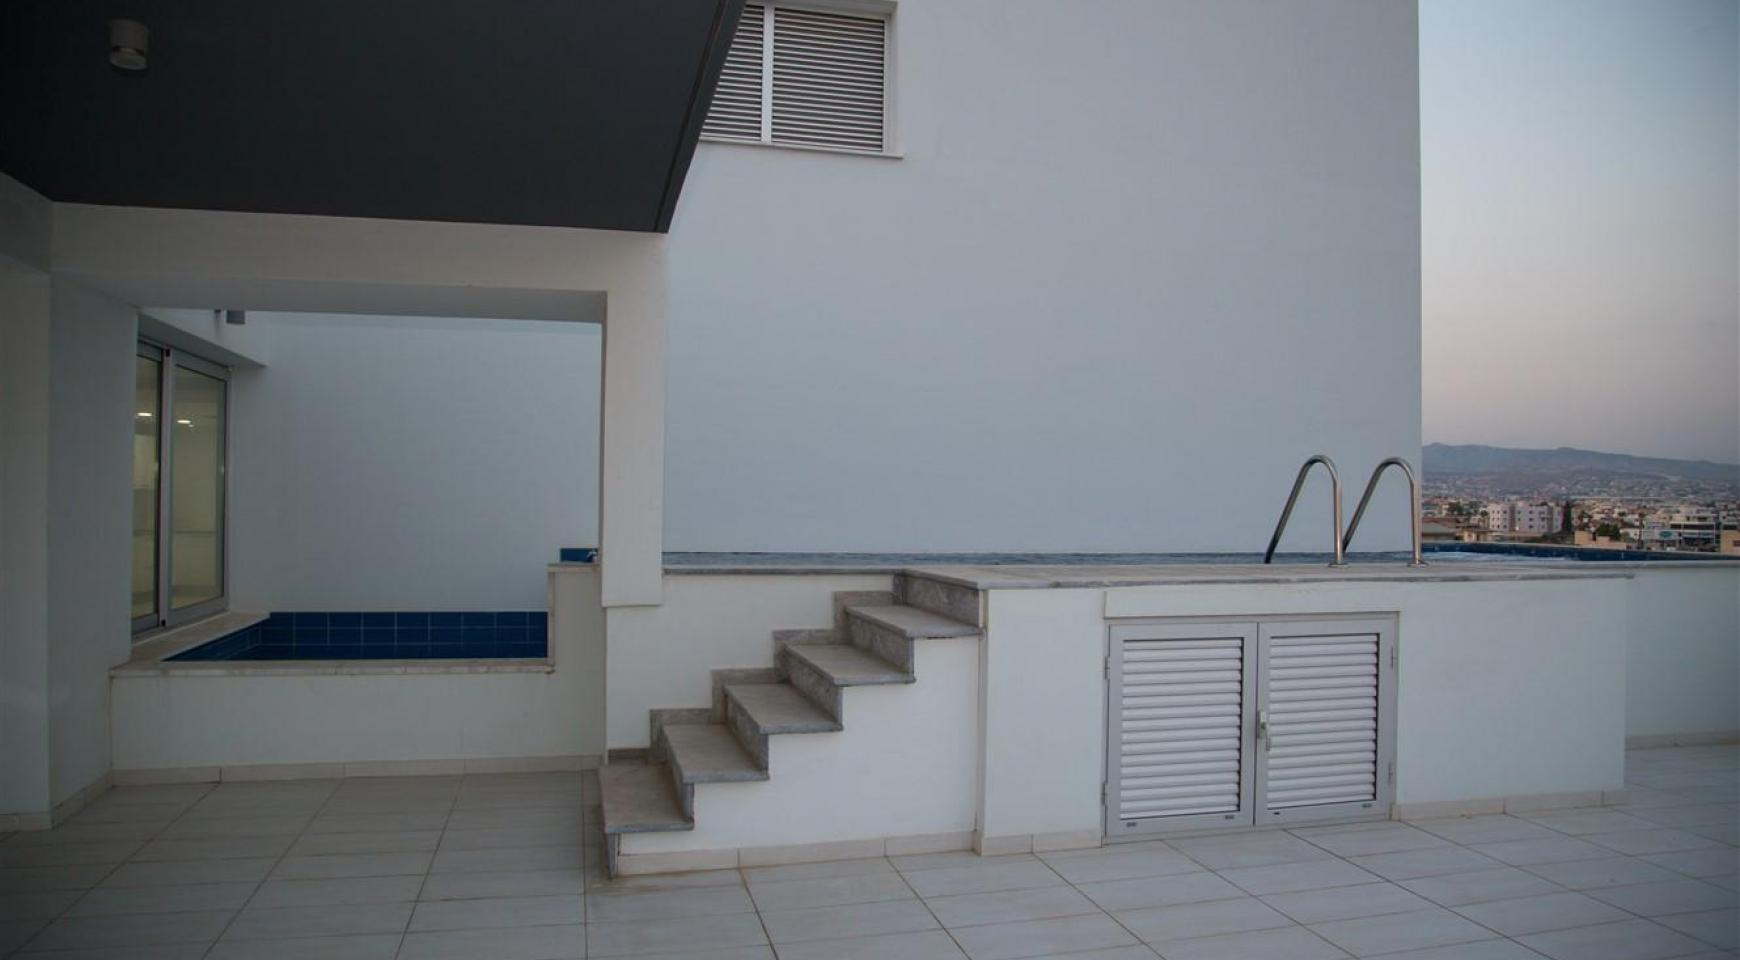 Elite 3 Bedroom Penthouse with private Swimming Pool on the Roof - 29